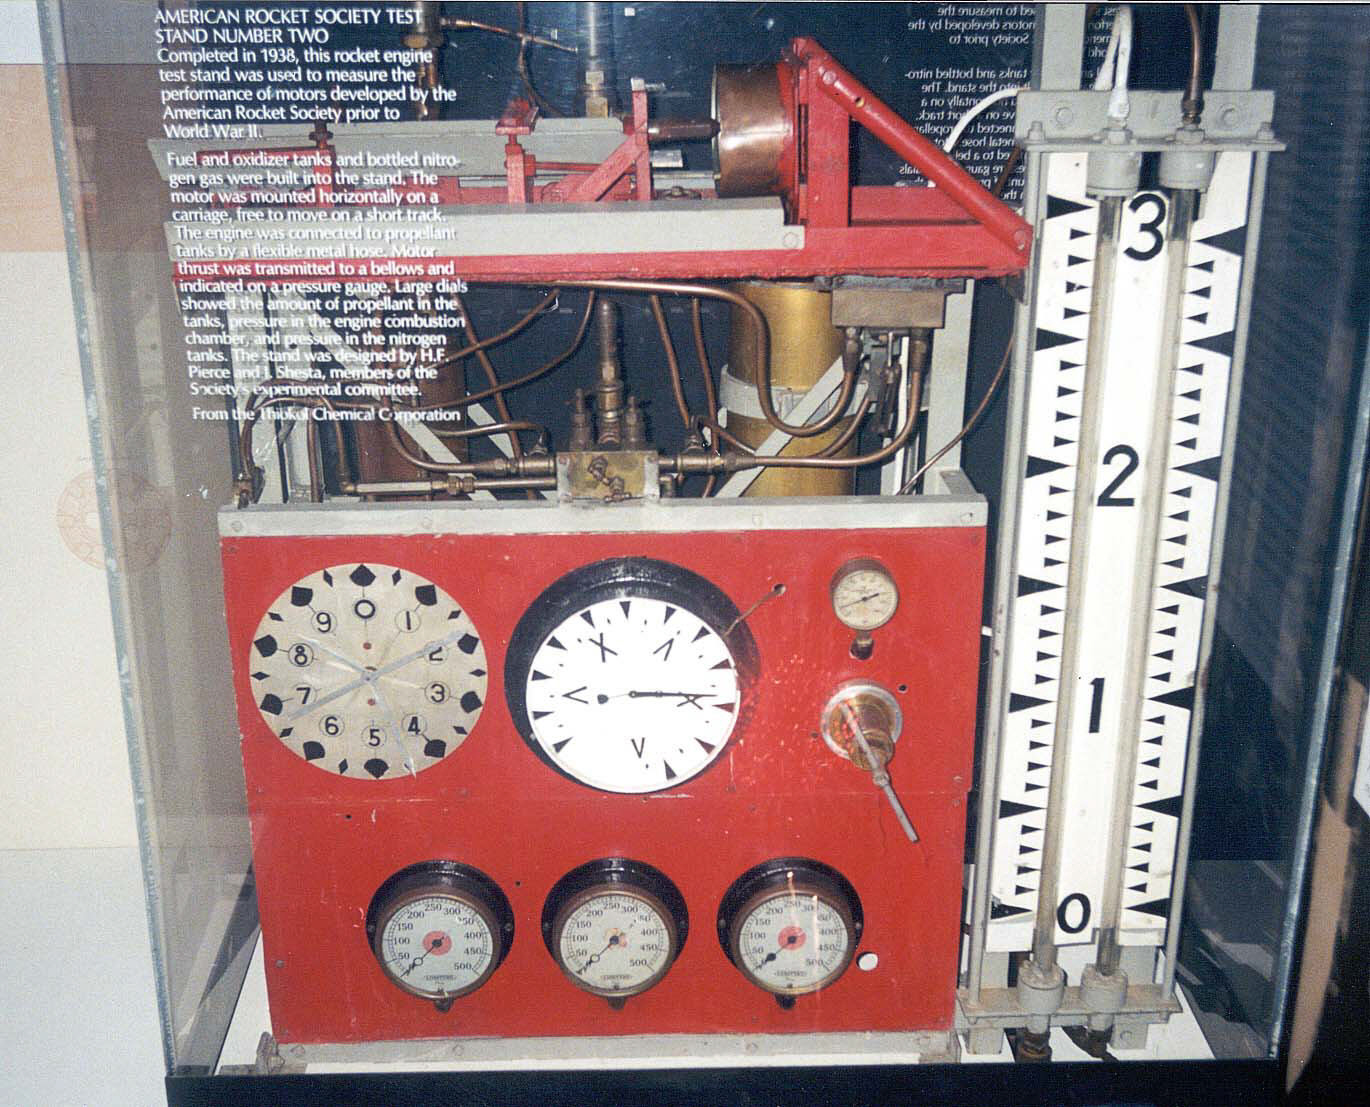 Image of : Rocket Test Stand No. 2, American Rocket Society (ARS)